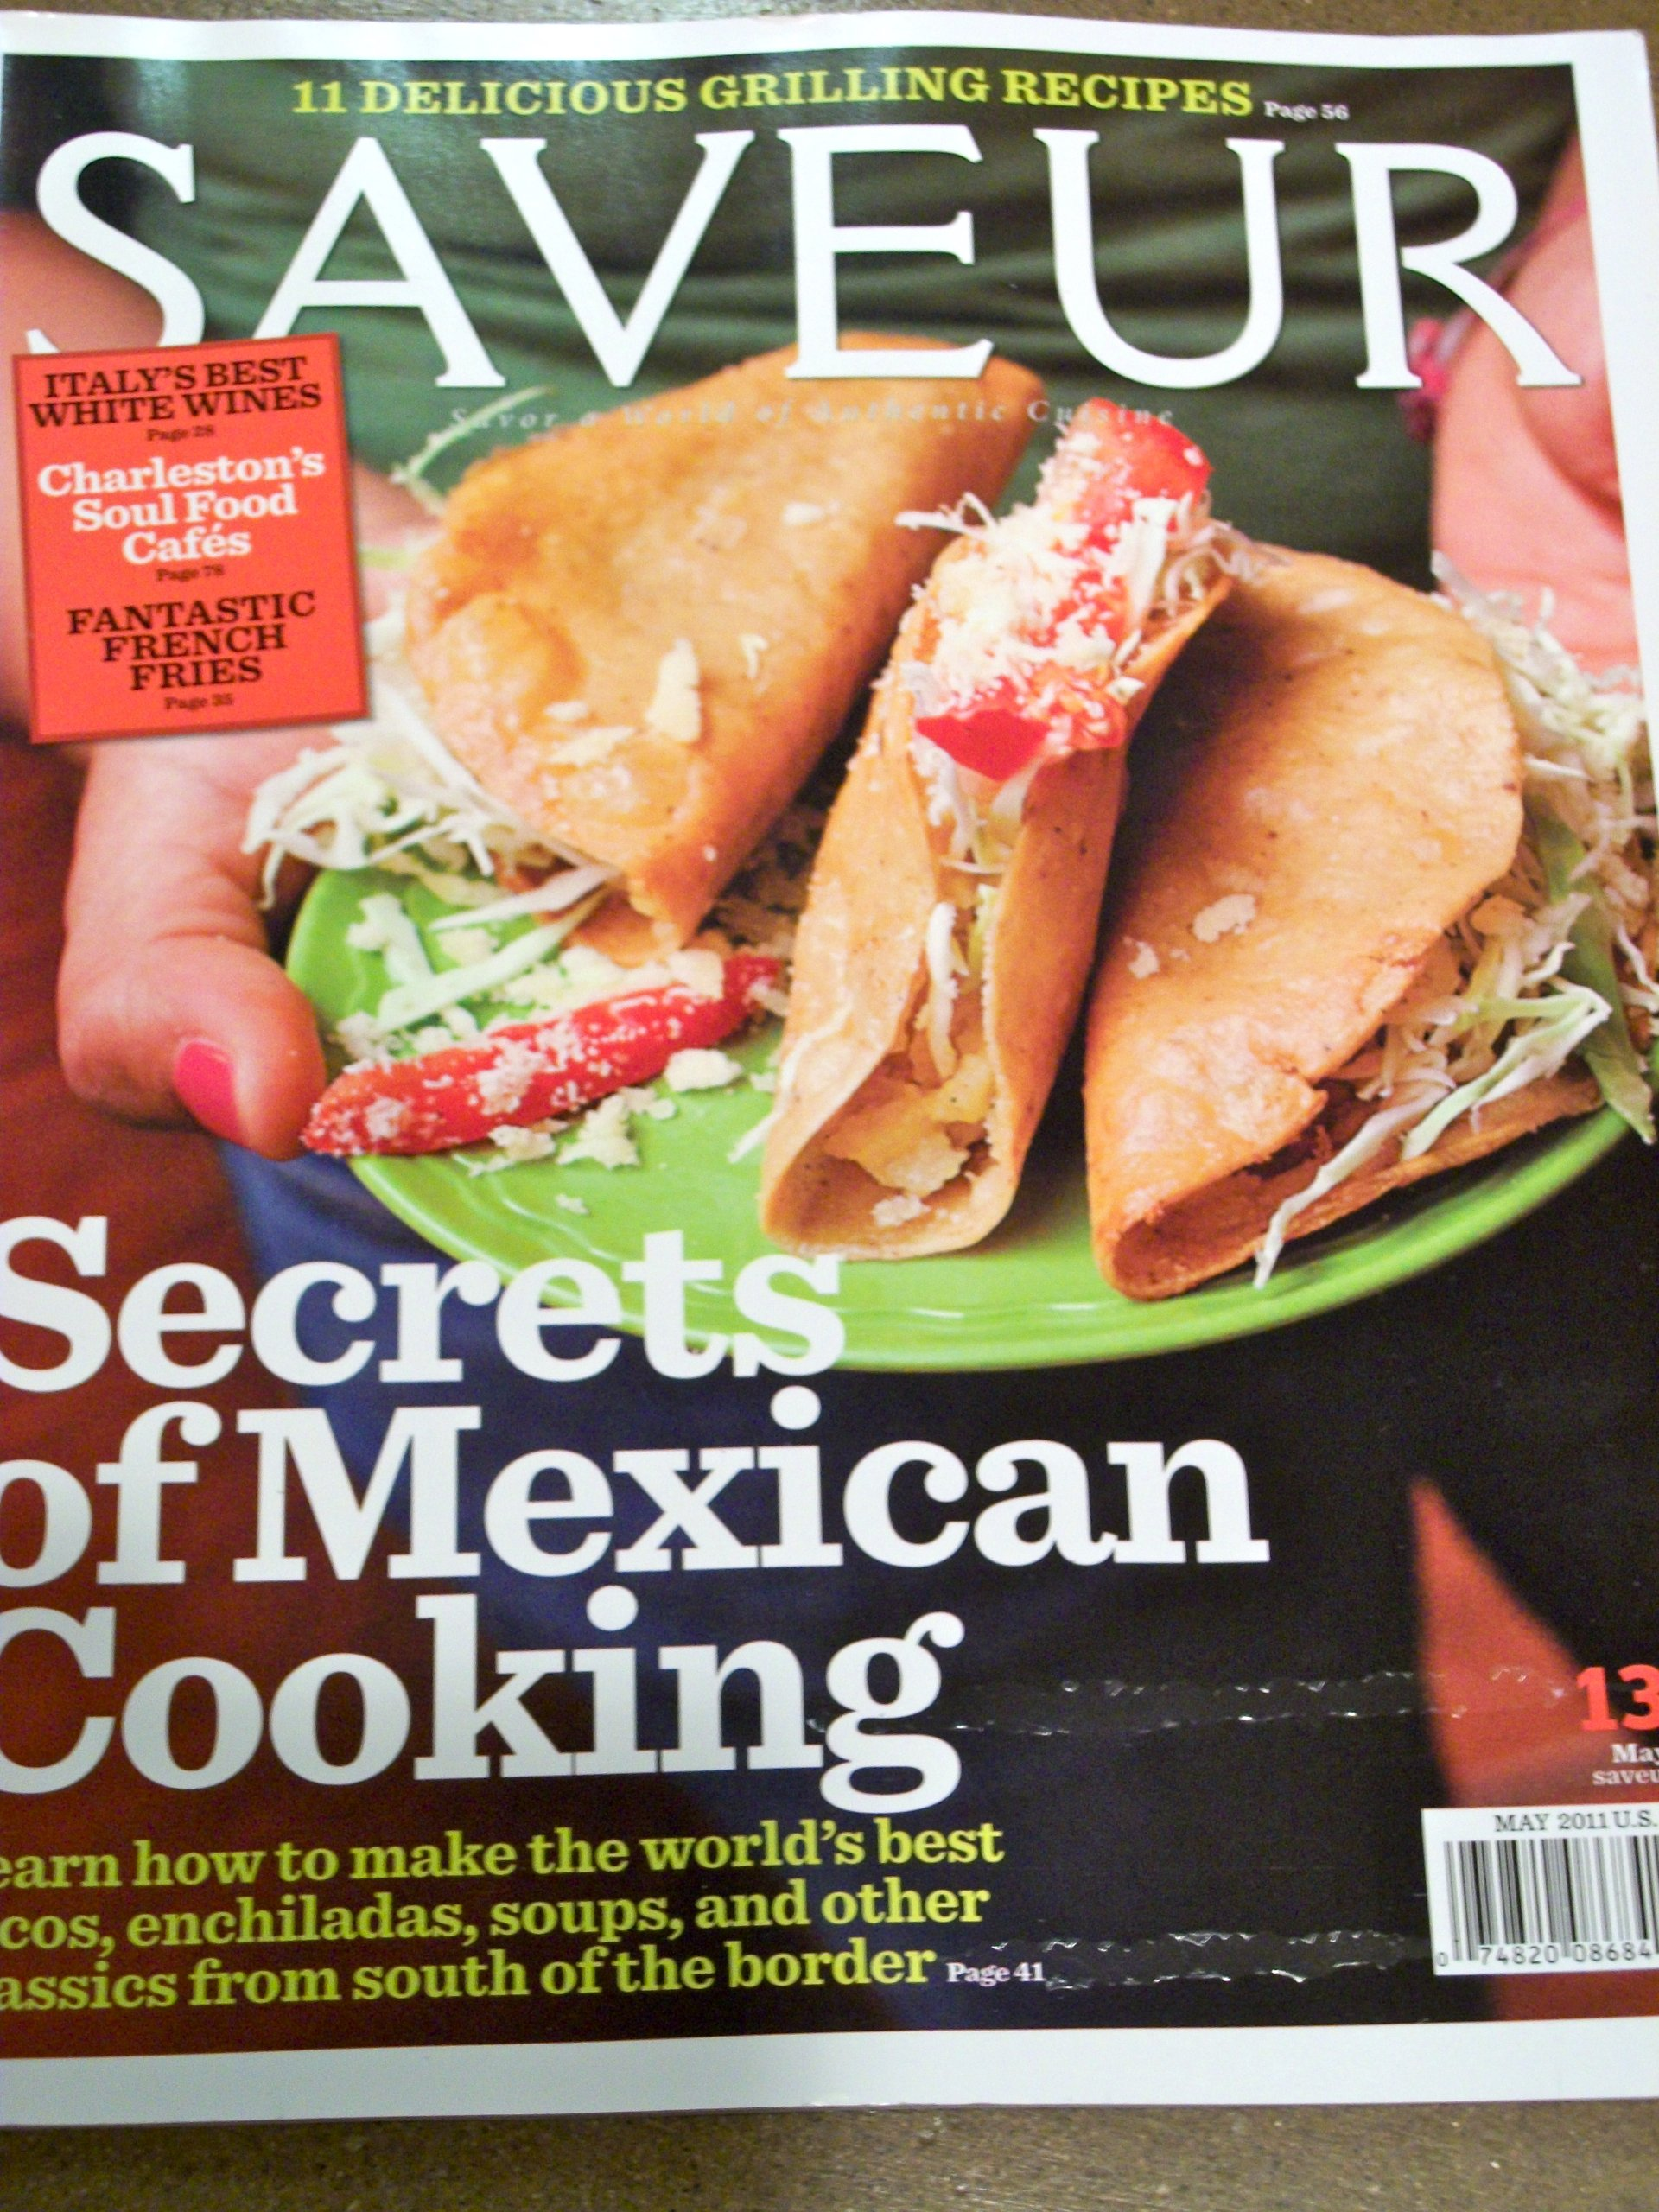 Saveur May 2011 Secrets of Mexican Cooking ebook